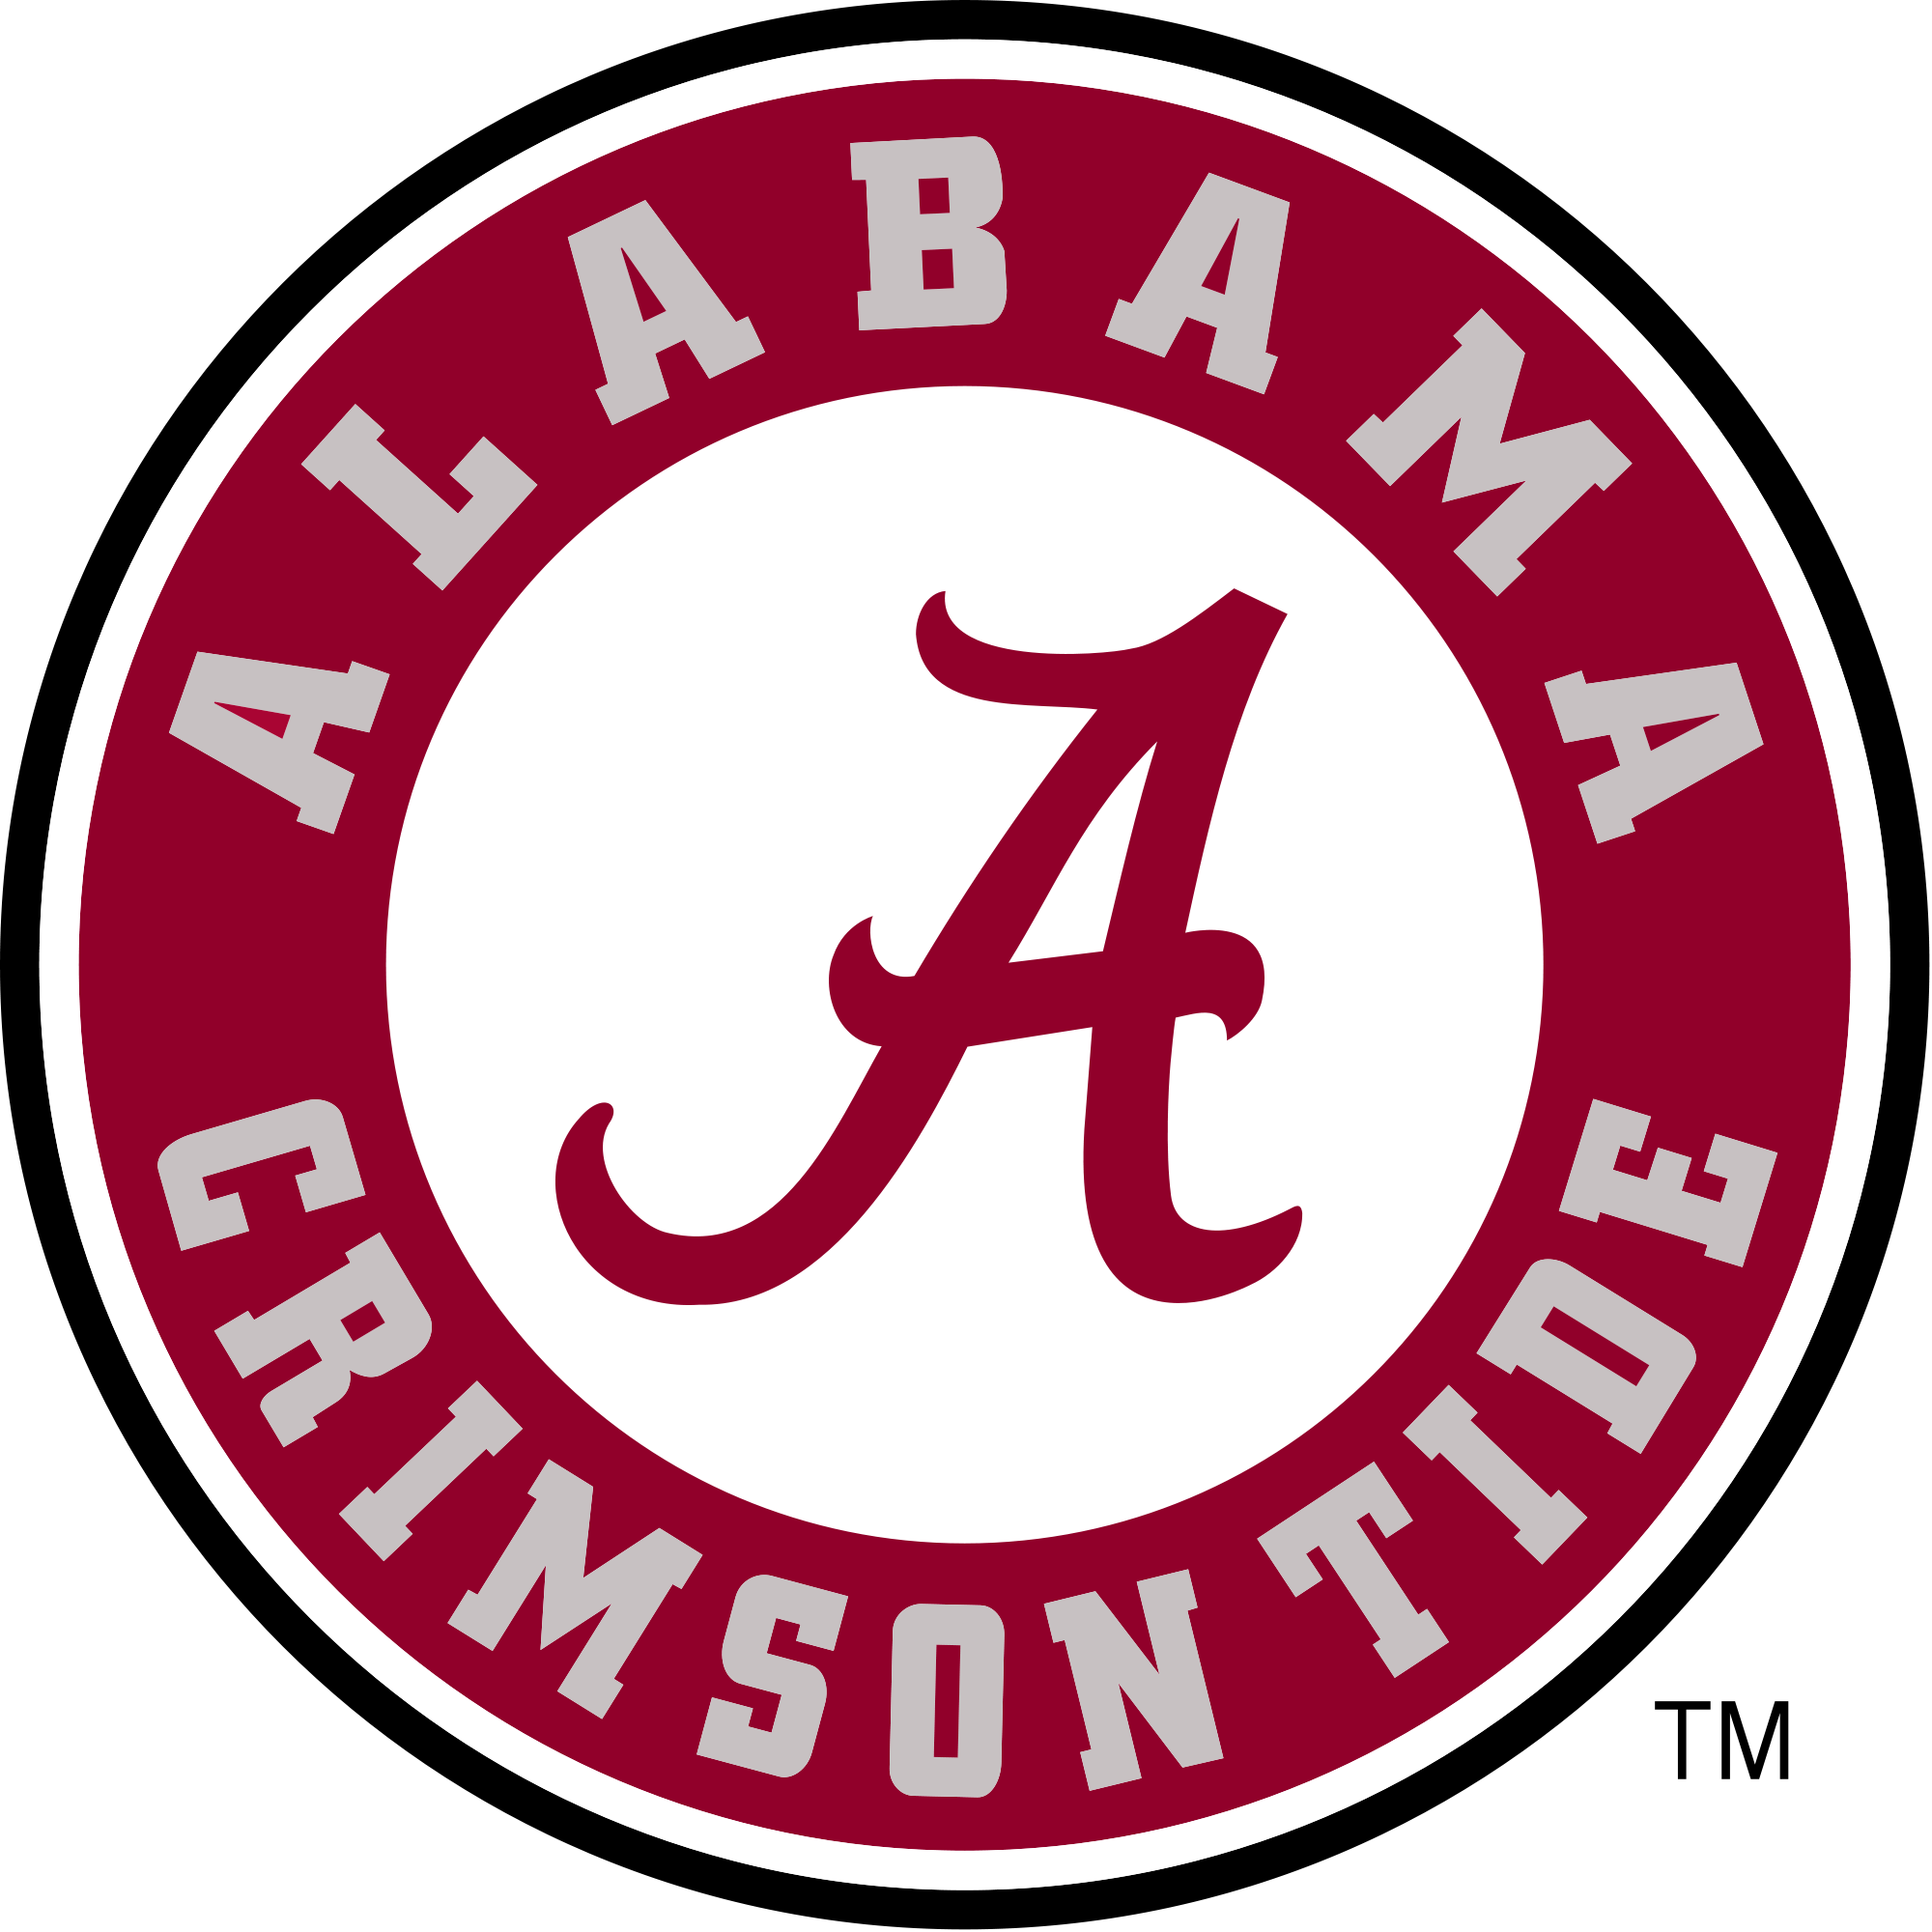 Alabama football elephant clipart image free library ncaa svg files free - Google Search | cricut explore svg files ... image free library